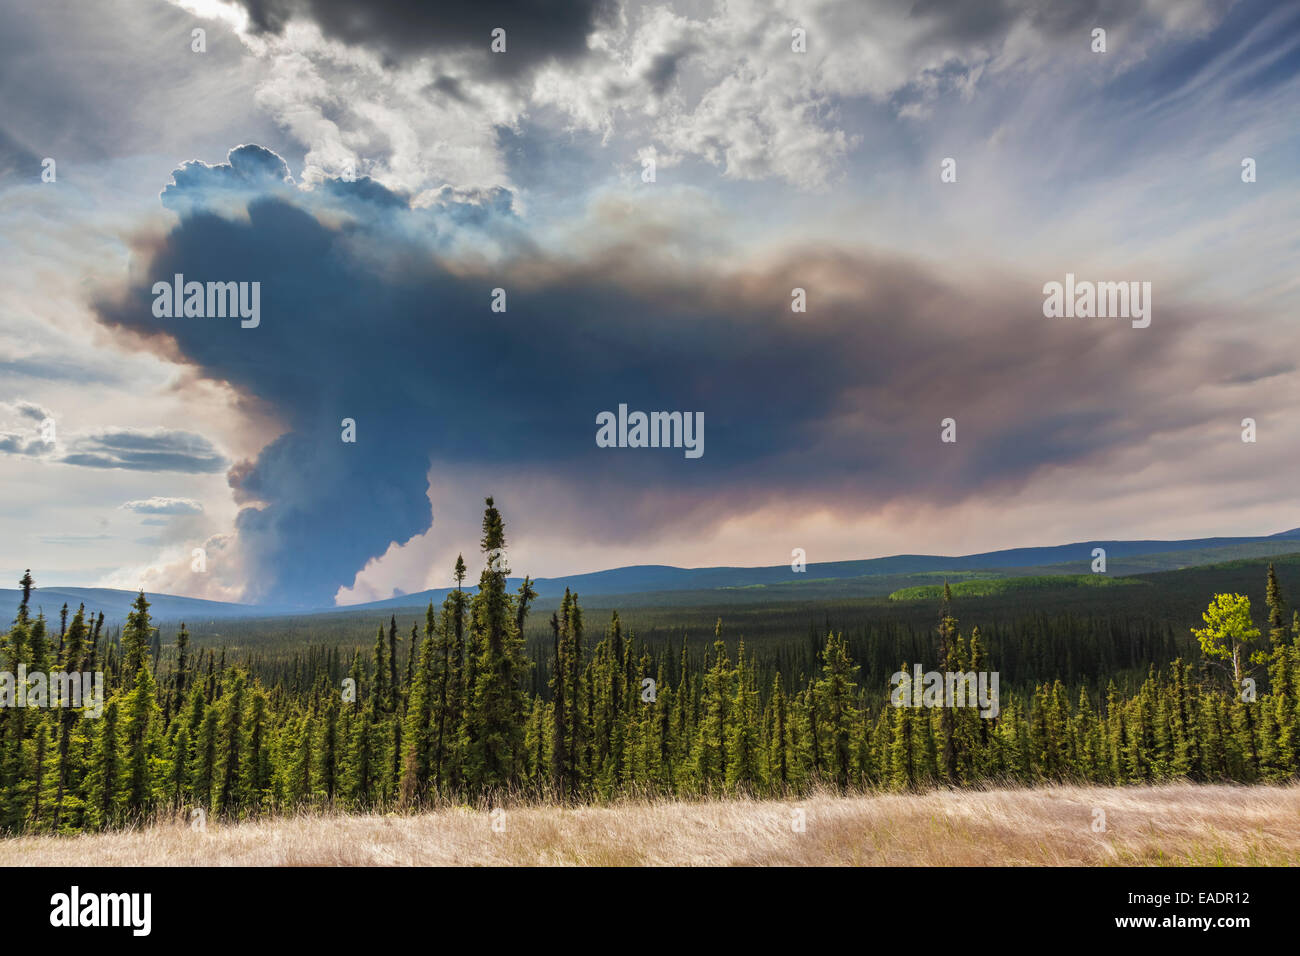 Fairbanks,Forest Fire,Hastings,Disaster - Stock Image